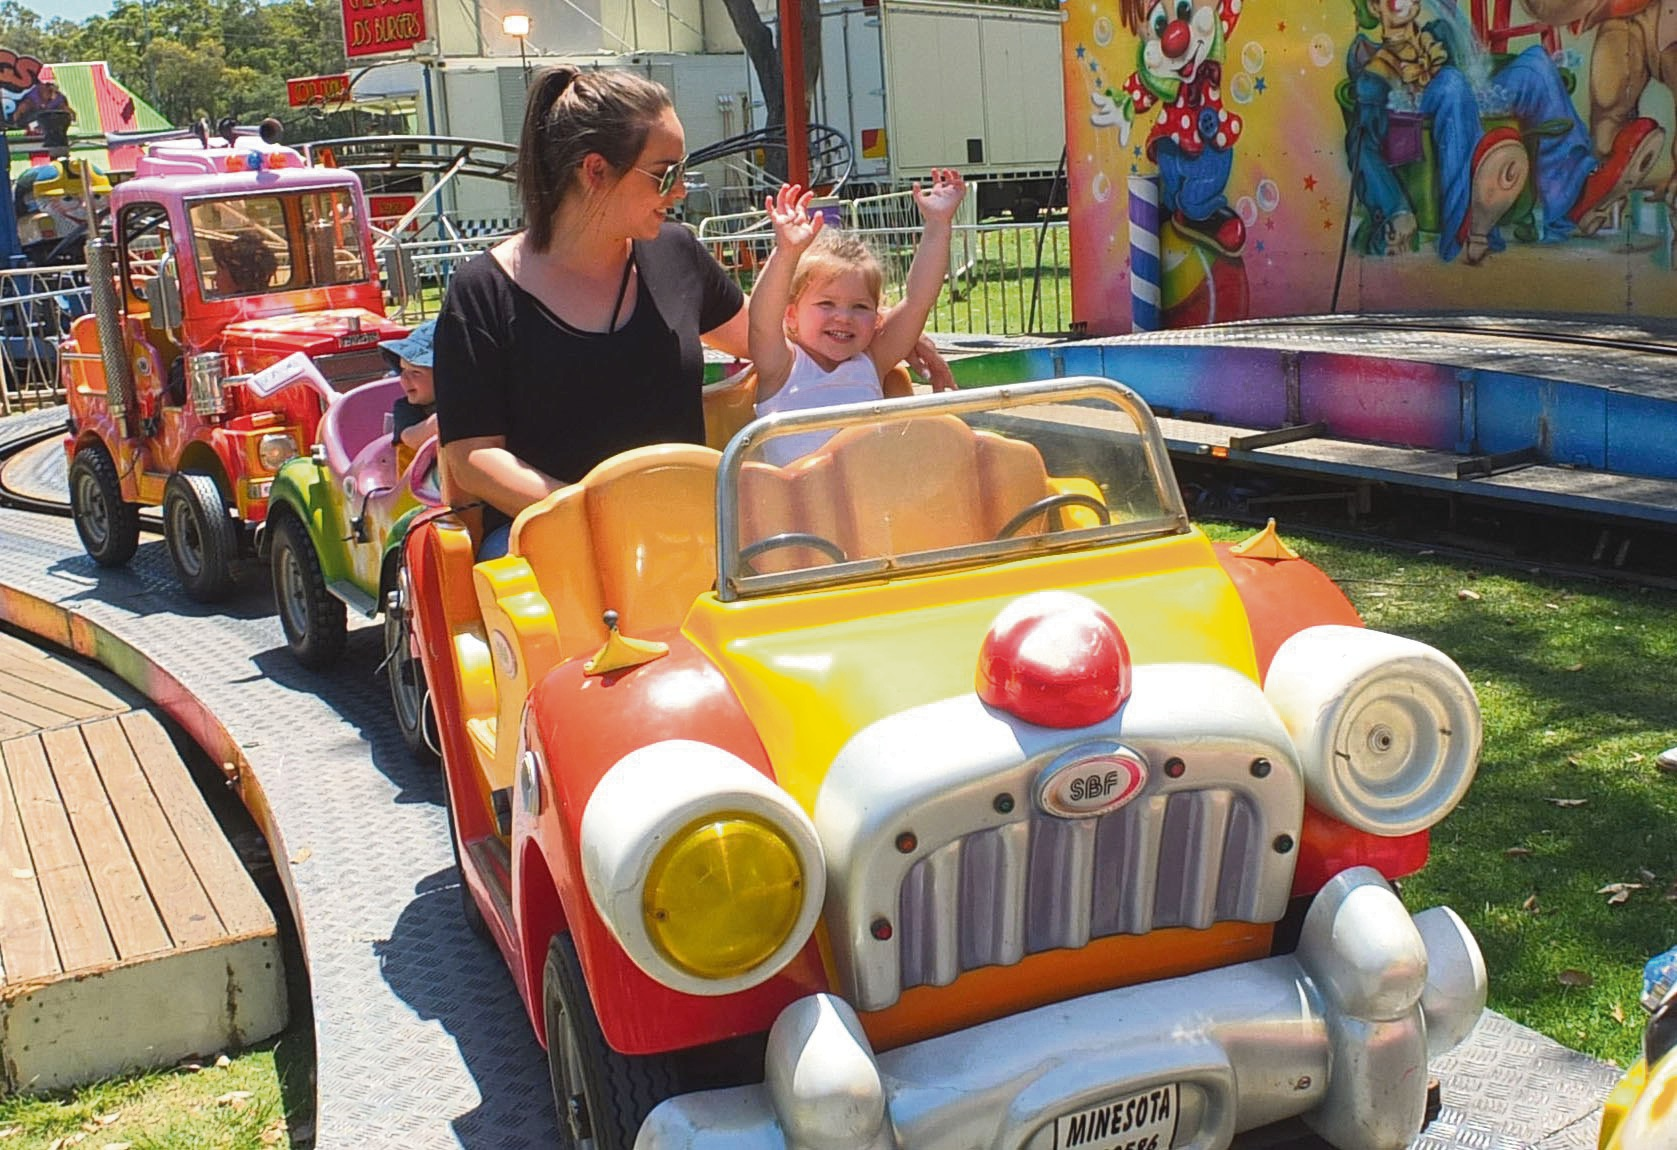 Emma Dyer with her daughter Billie (2) enjoy a ride at Side Show Alley.